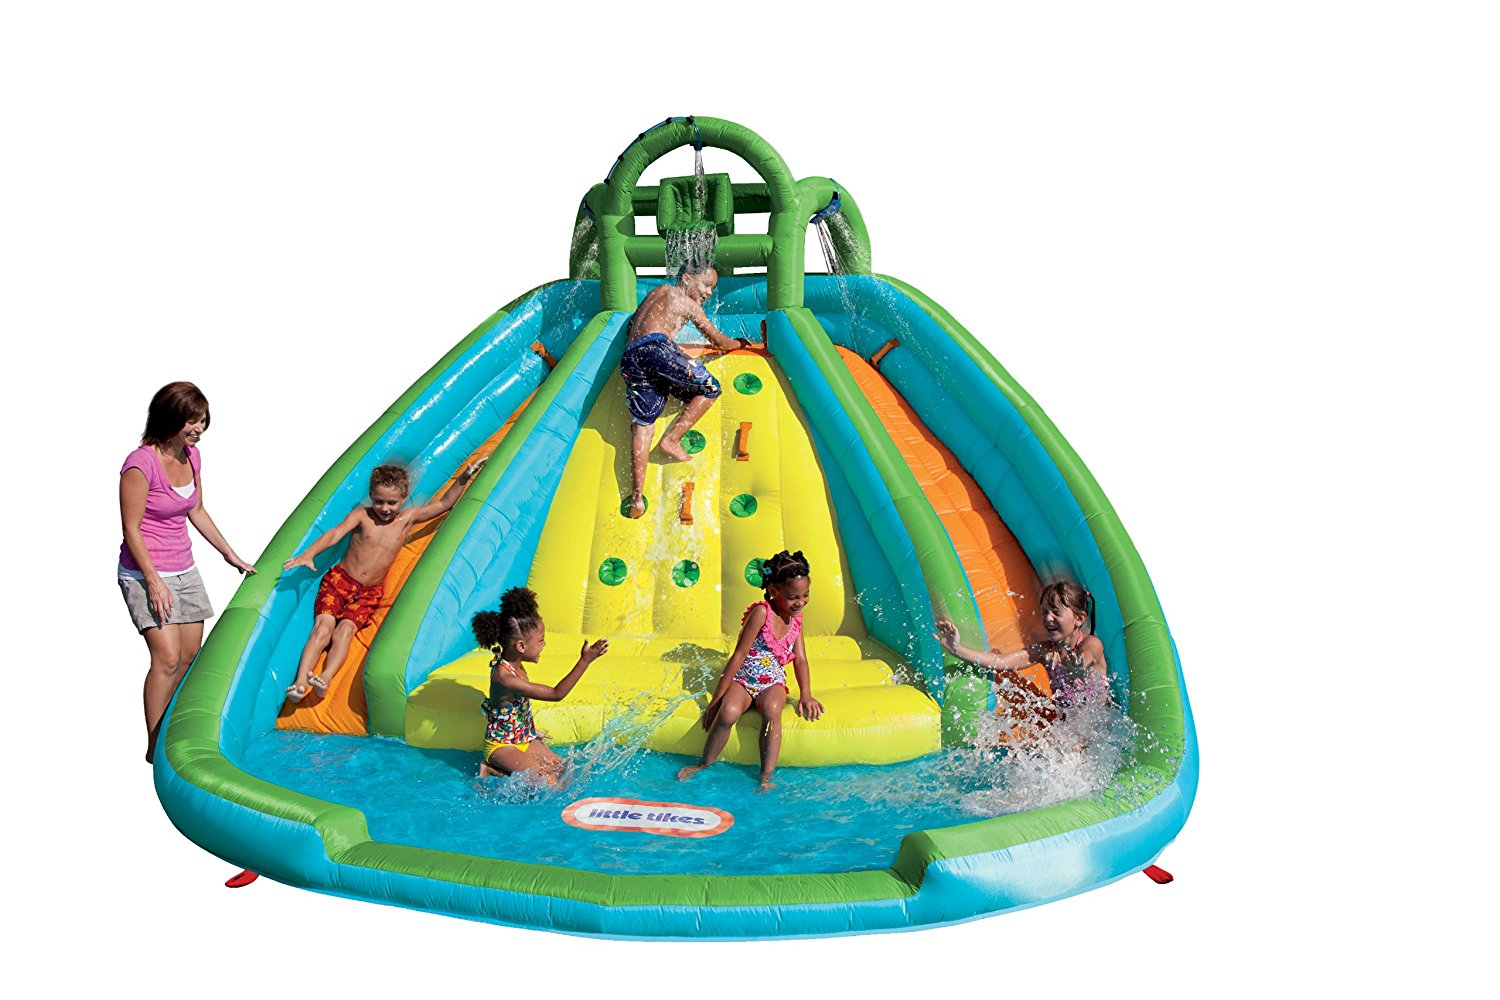 Top 10 Best Inflatable Pool Slides in 2018